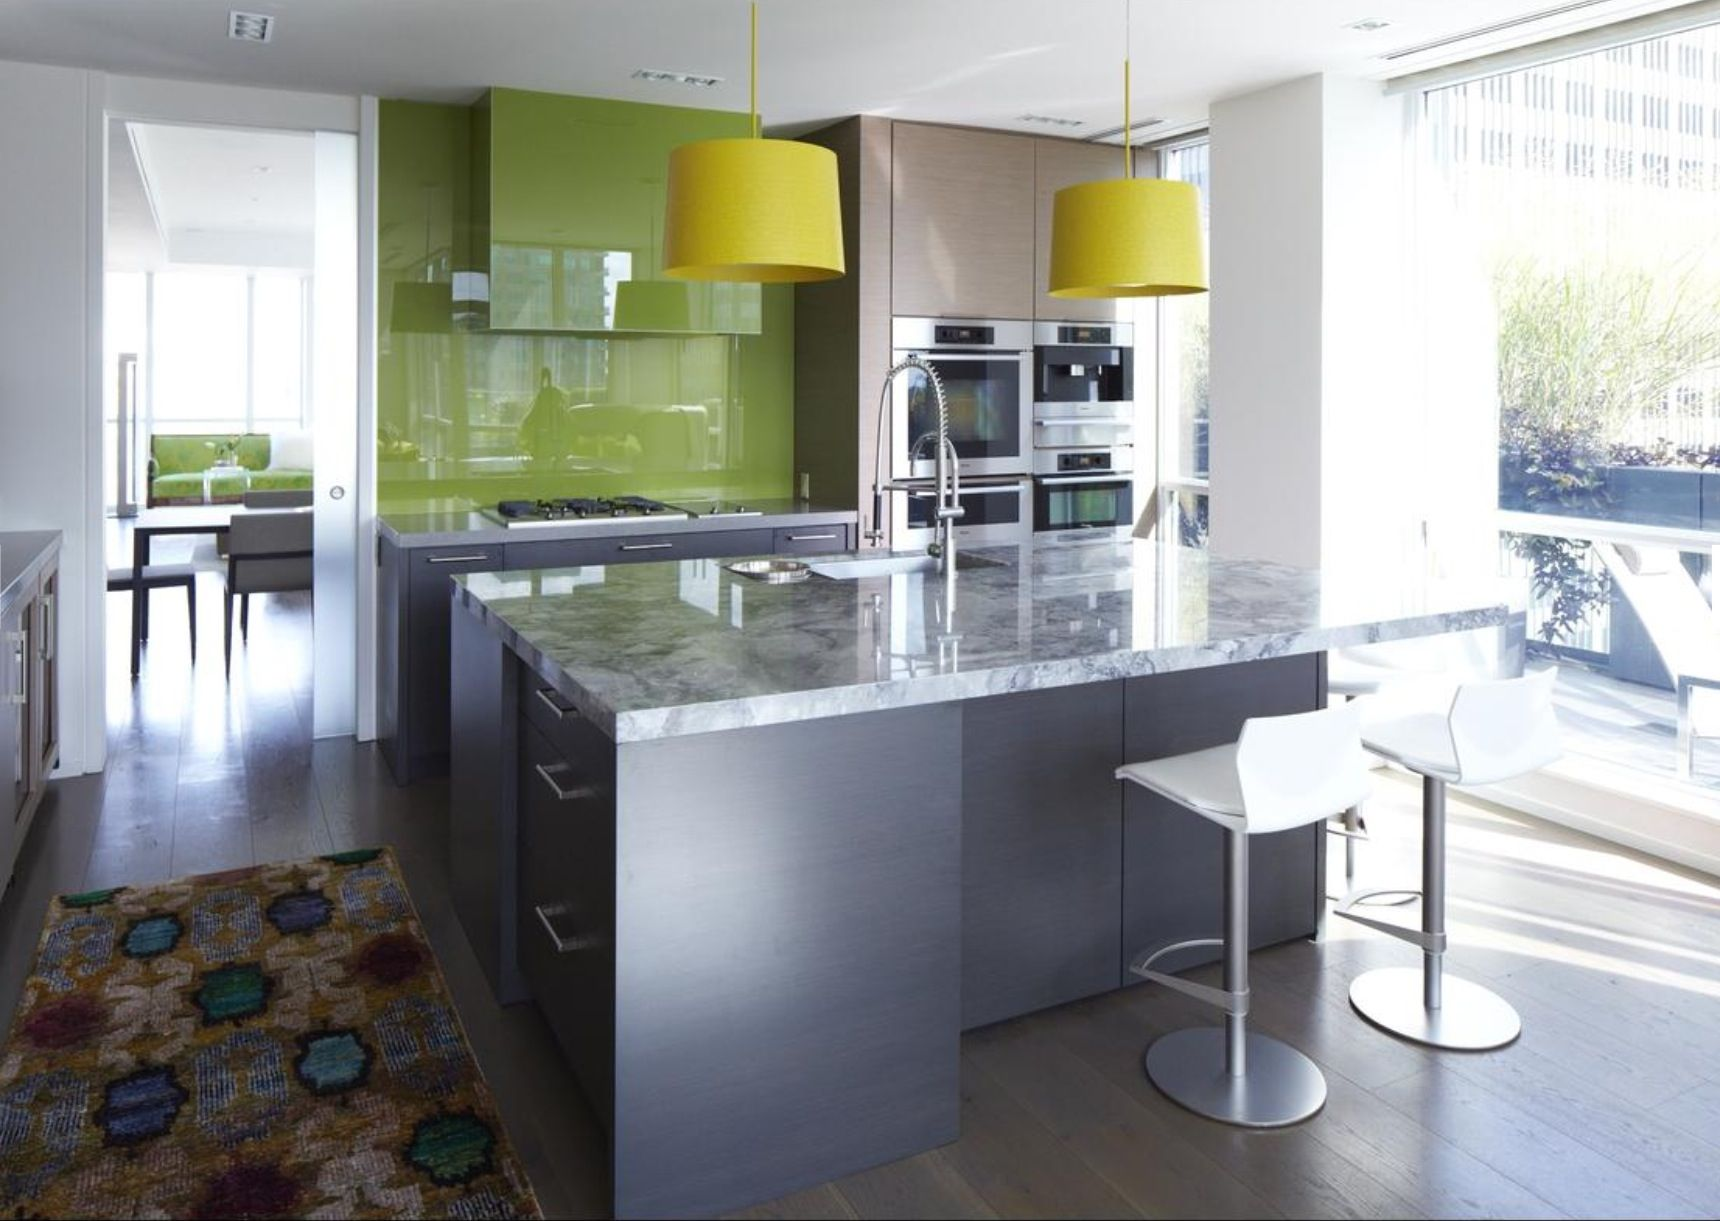 Kitchens · House U0026 Home   Sasha Josipovicz Designer